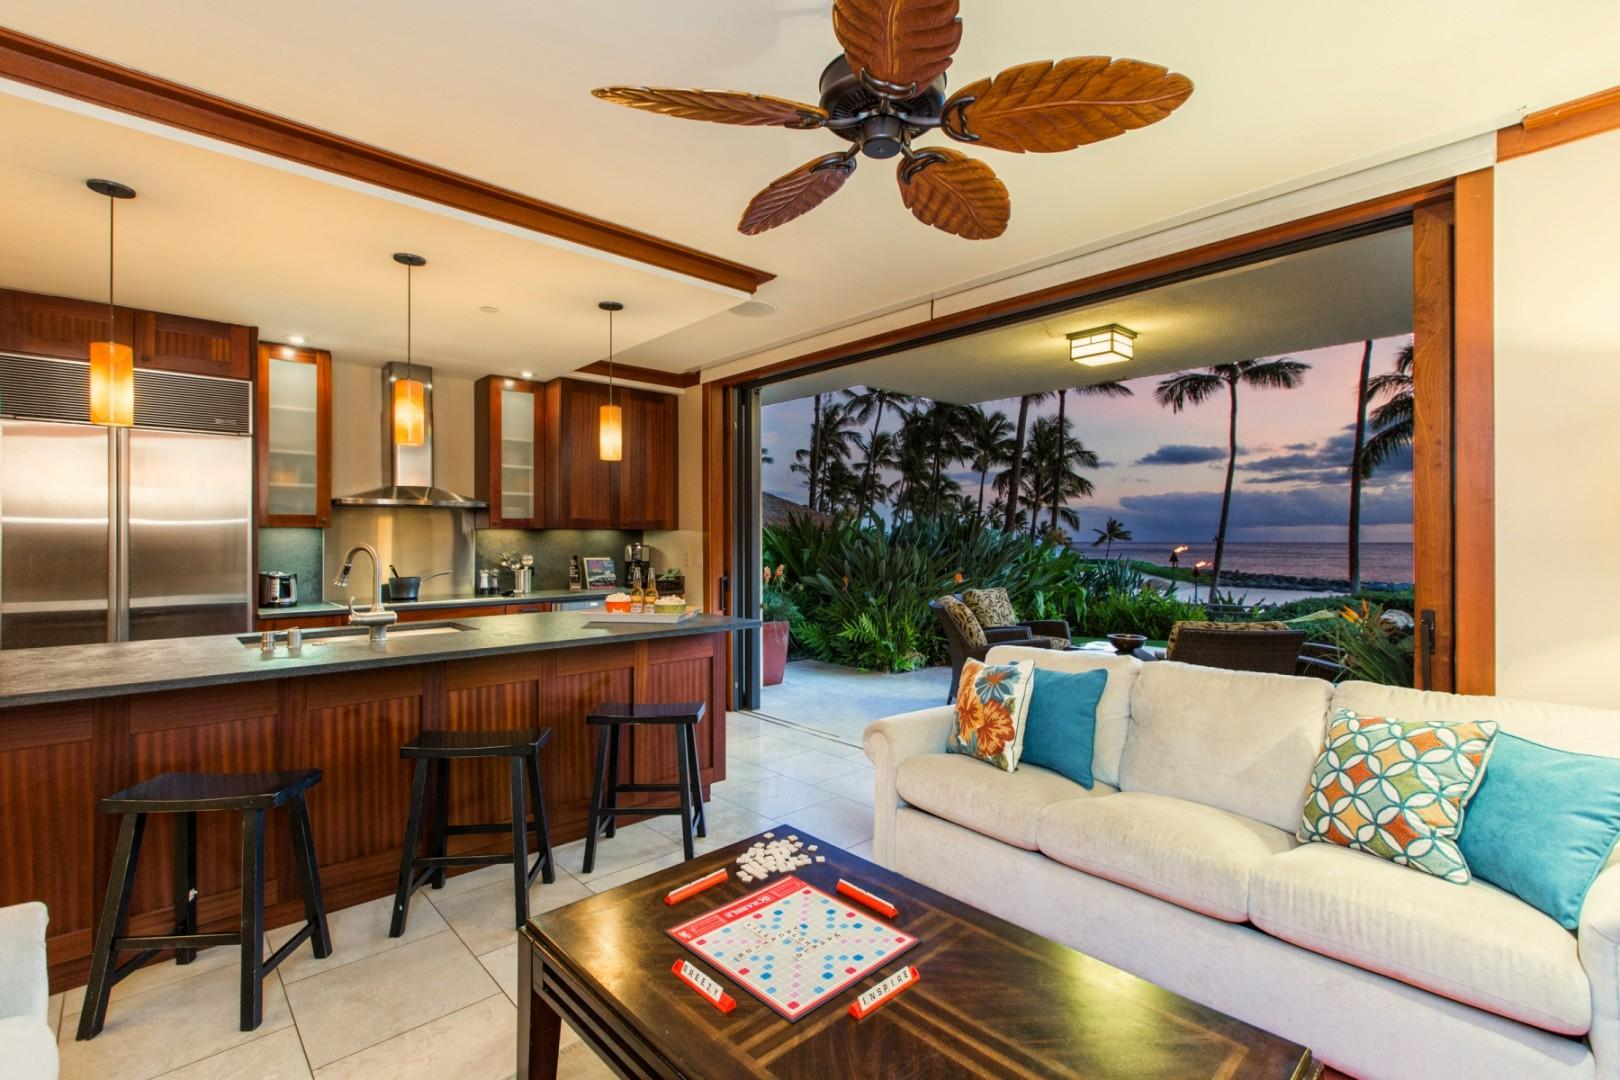 Enjoy ocean views from the comfort of the living area